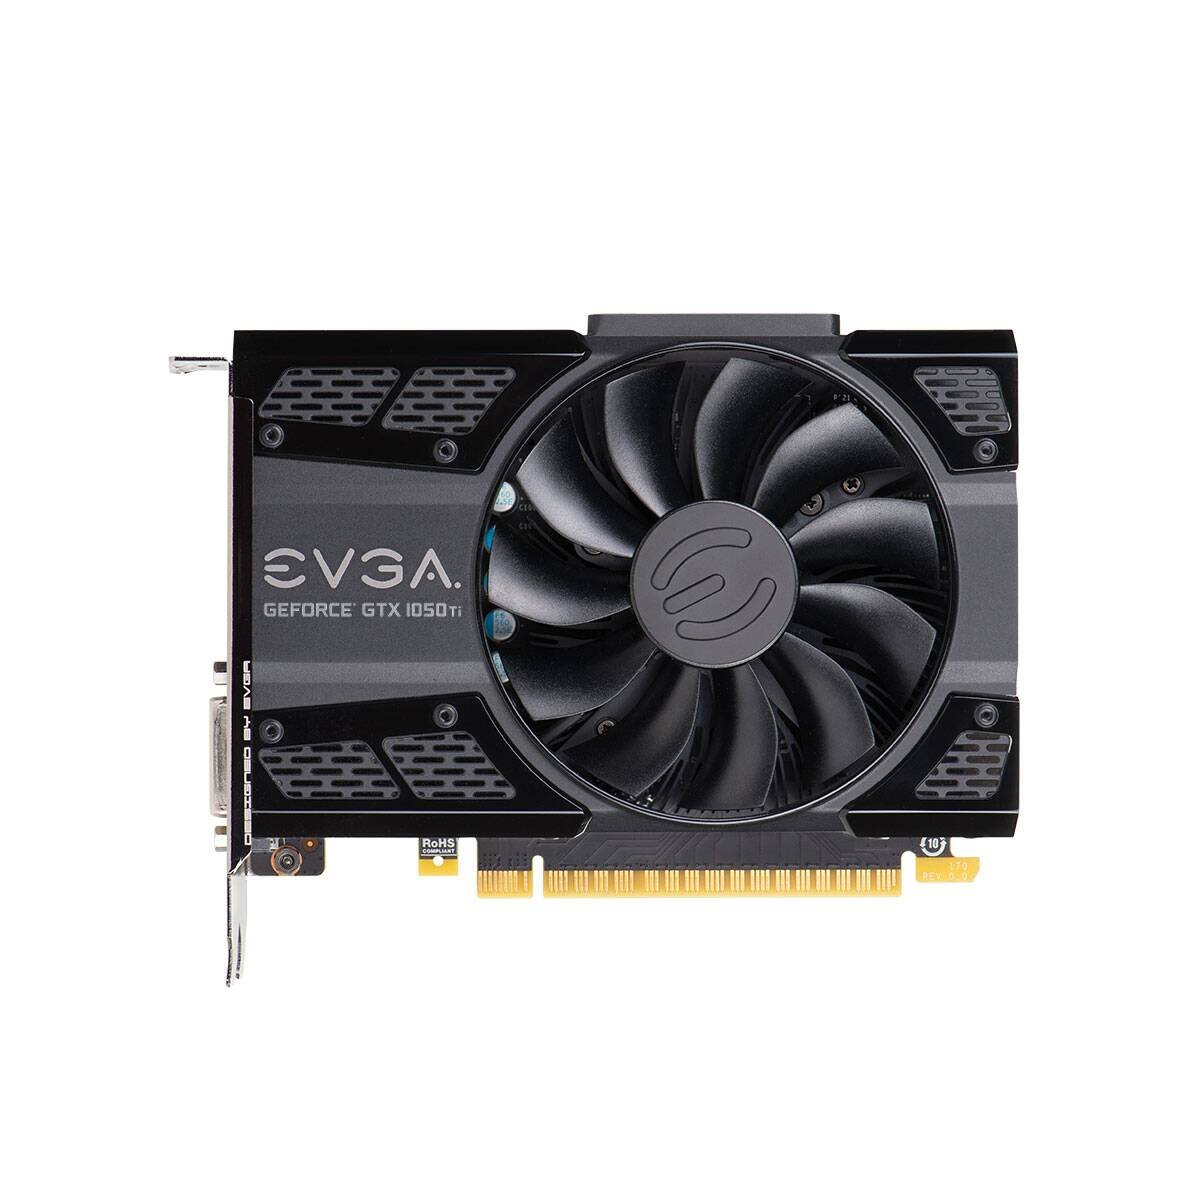 EVGA GTX 1050Ti 4GB DDR5 Graphics Card